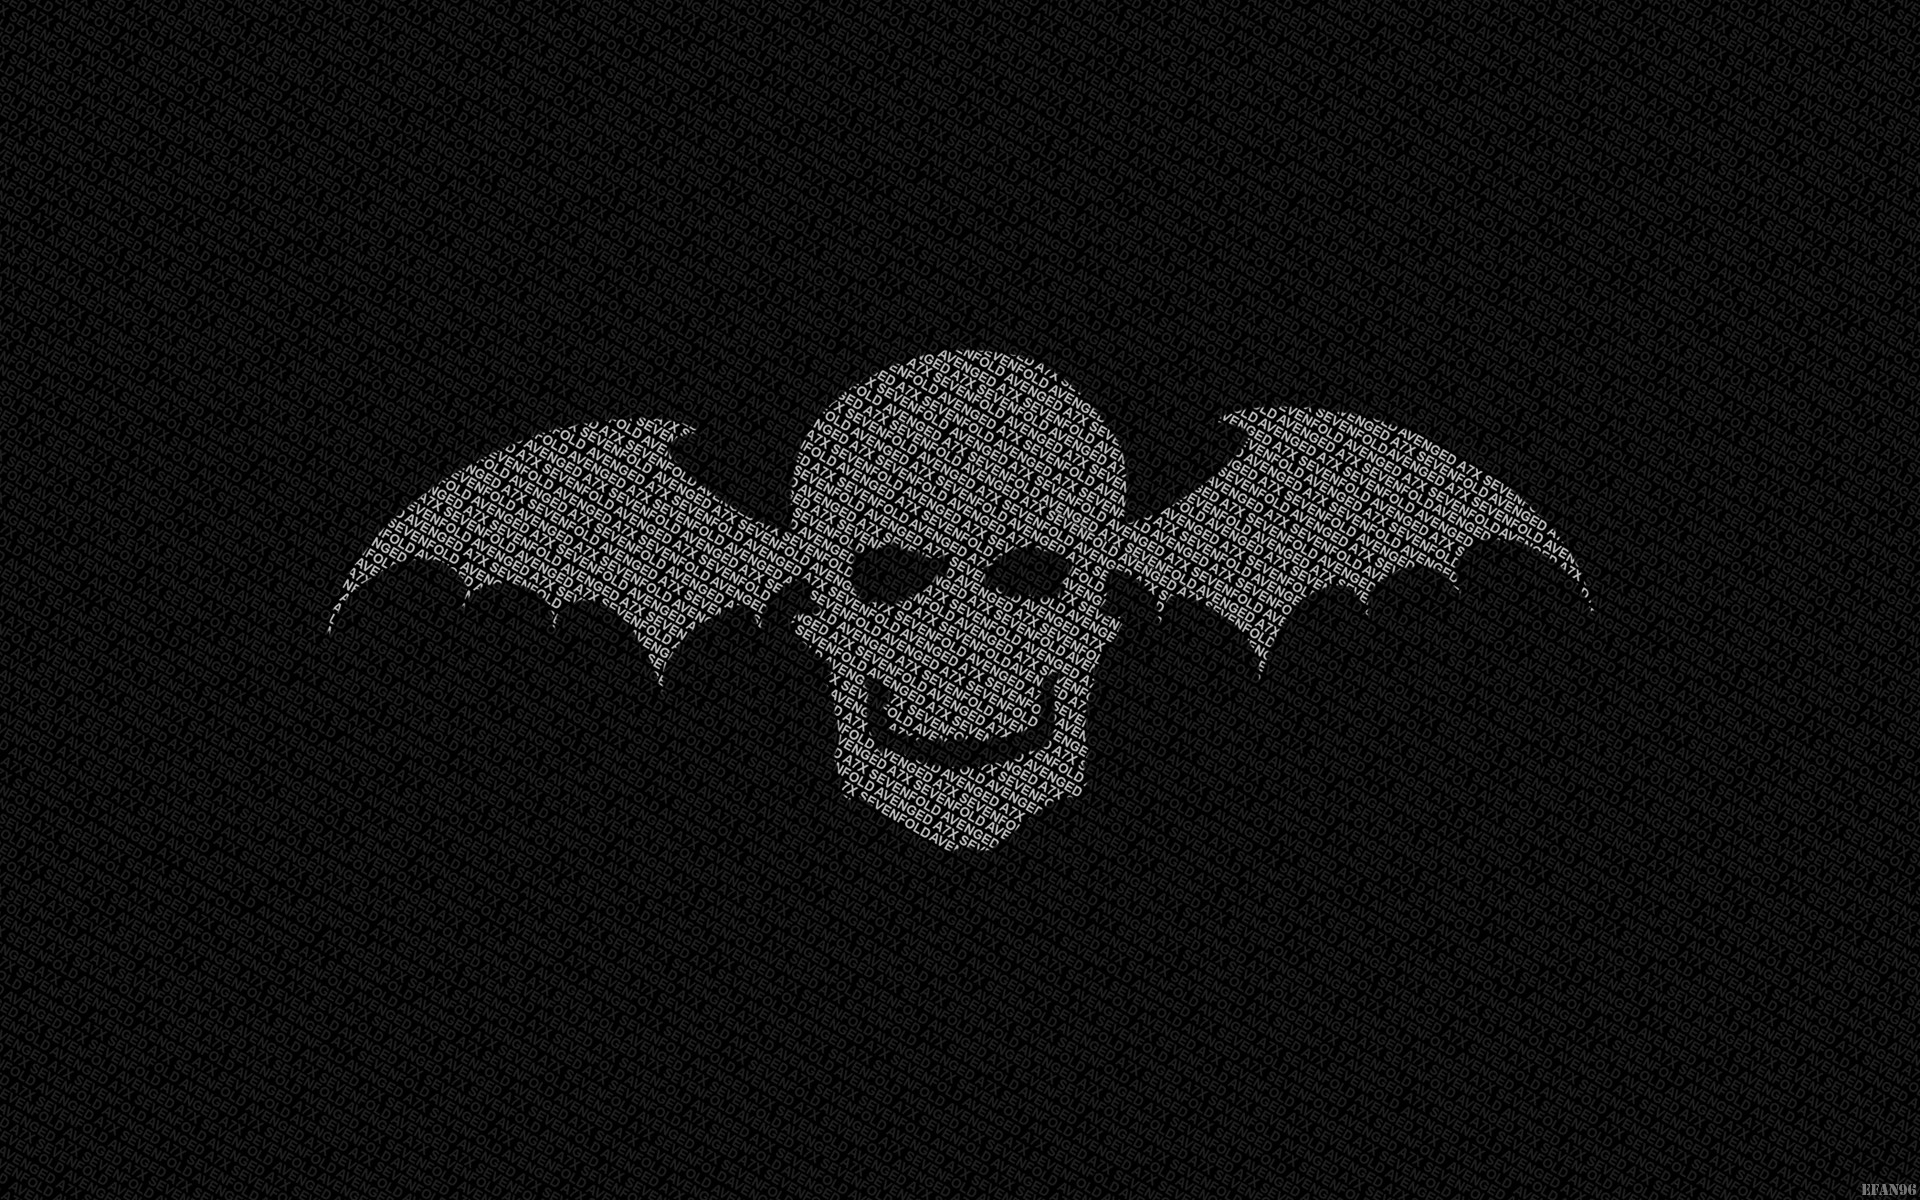 Avenged Sevenfold wallpaper Download free cool HD backgrounds